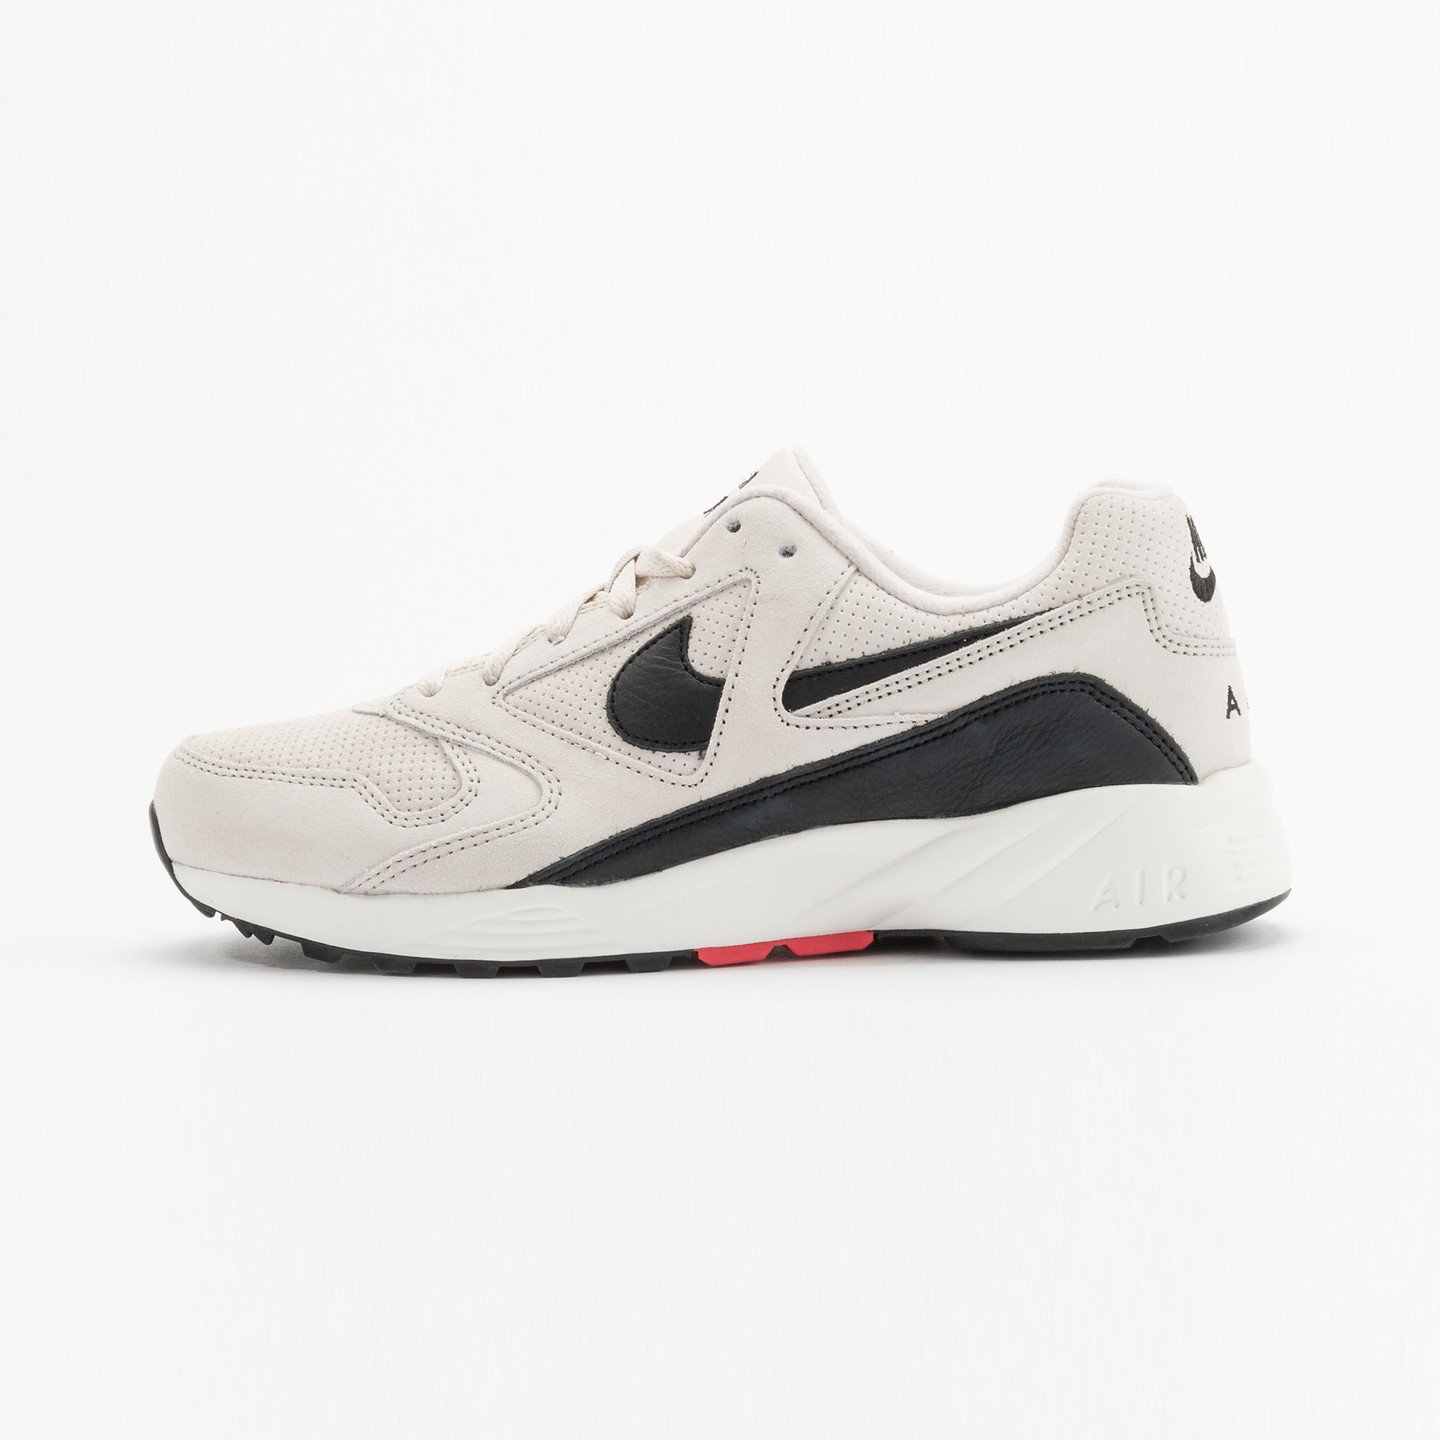 Nike Air Icarus Extra QS Sail / Black 882019-100-41